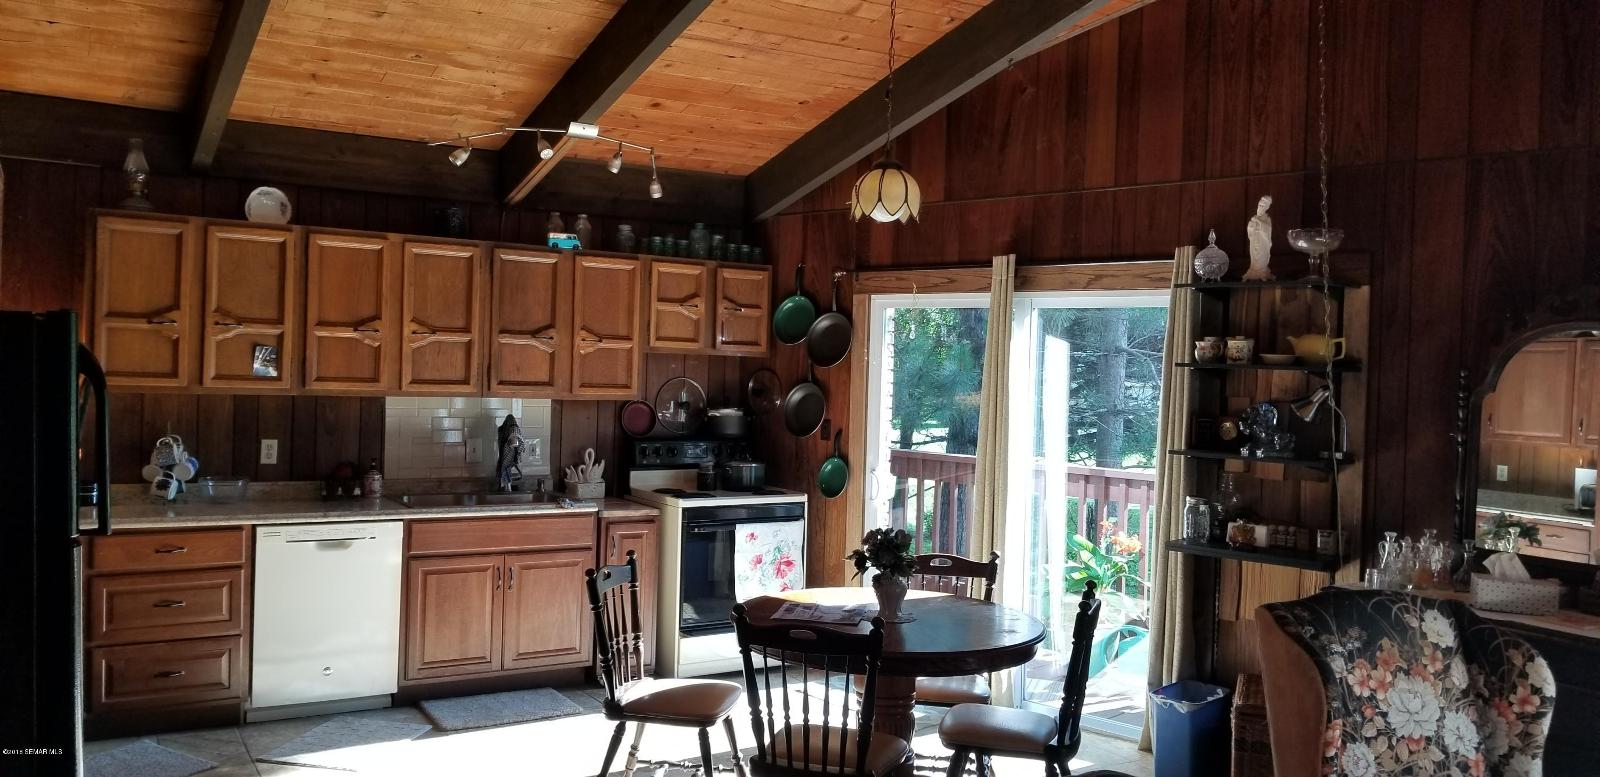 1801 25th st sw austin mn mls 4091347 coldwell banker